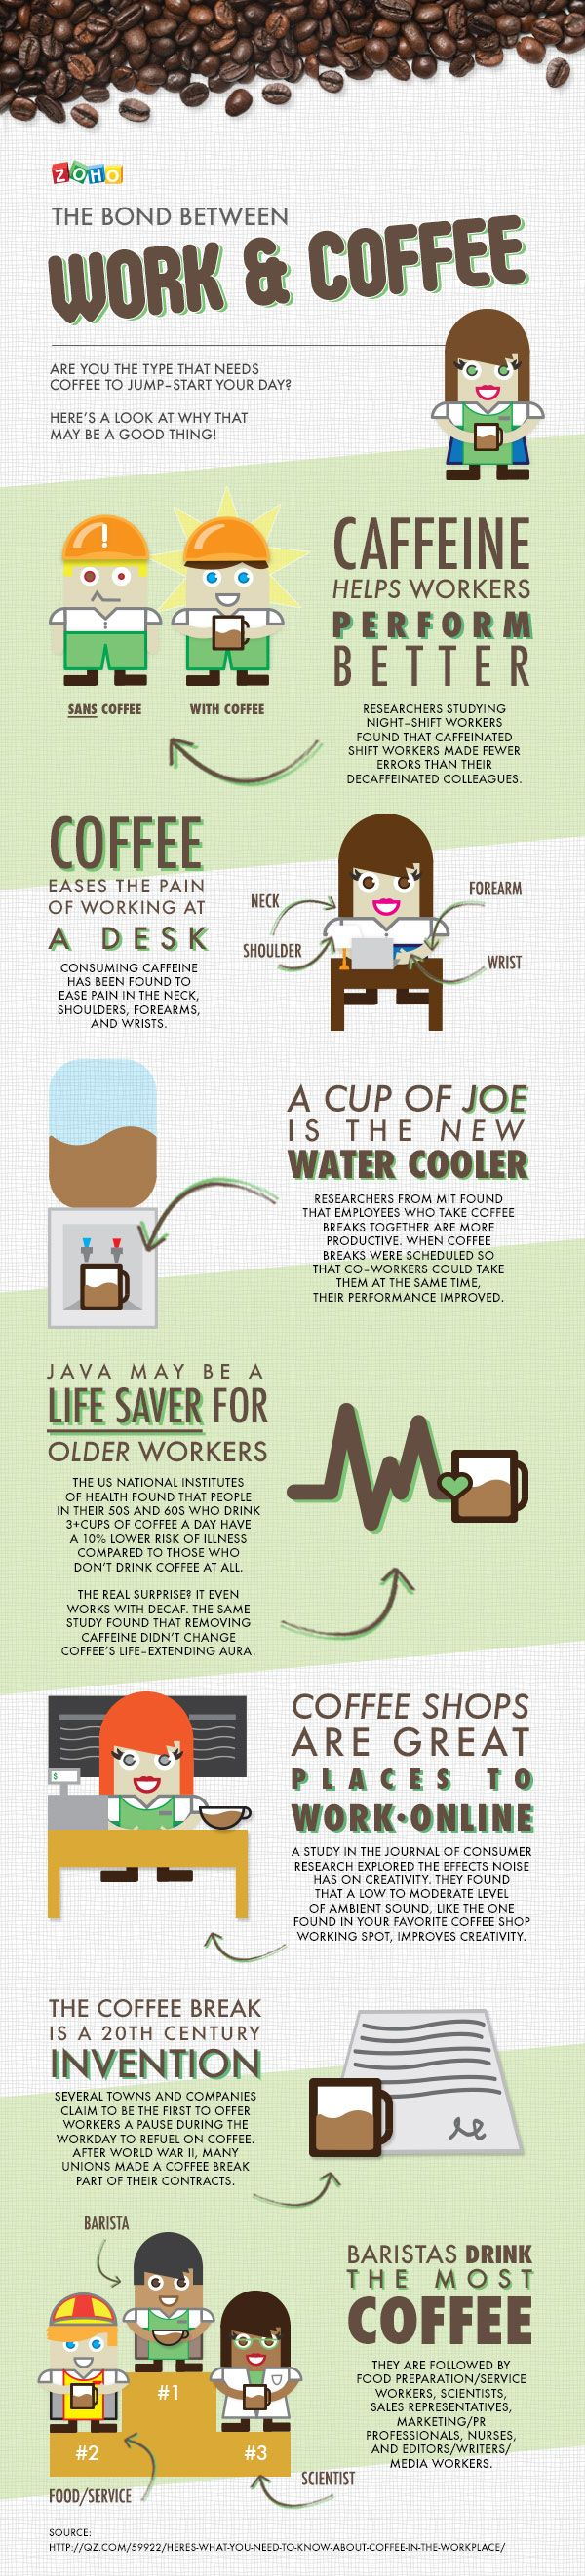 The Benefits Of Drinking Coffee While Working Each Day #infographic